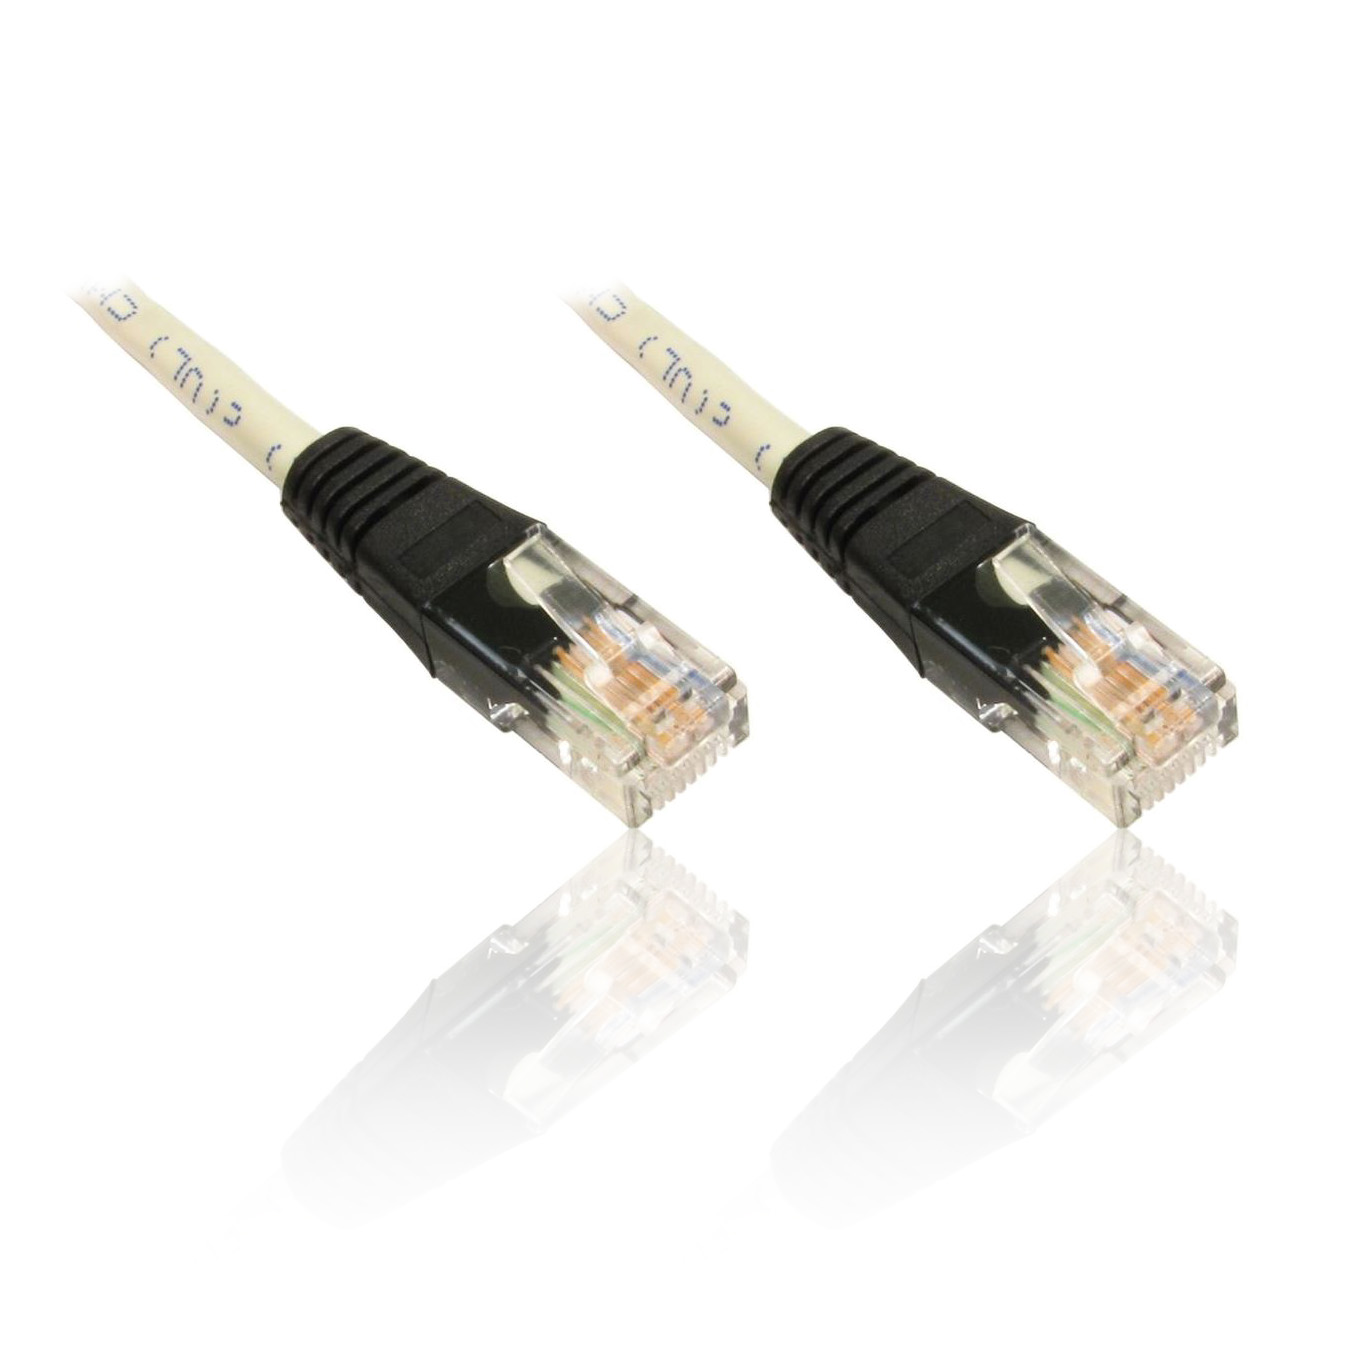 Cable Ethernet 25m Maison Design 6m Cat5e Cat 5e Rj45 Network Patch Lan Lead Wire 83 39 Ft Crossover Xover